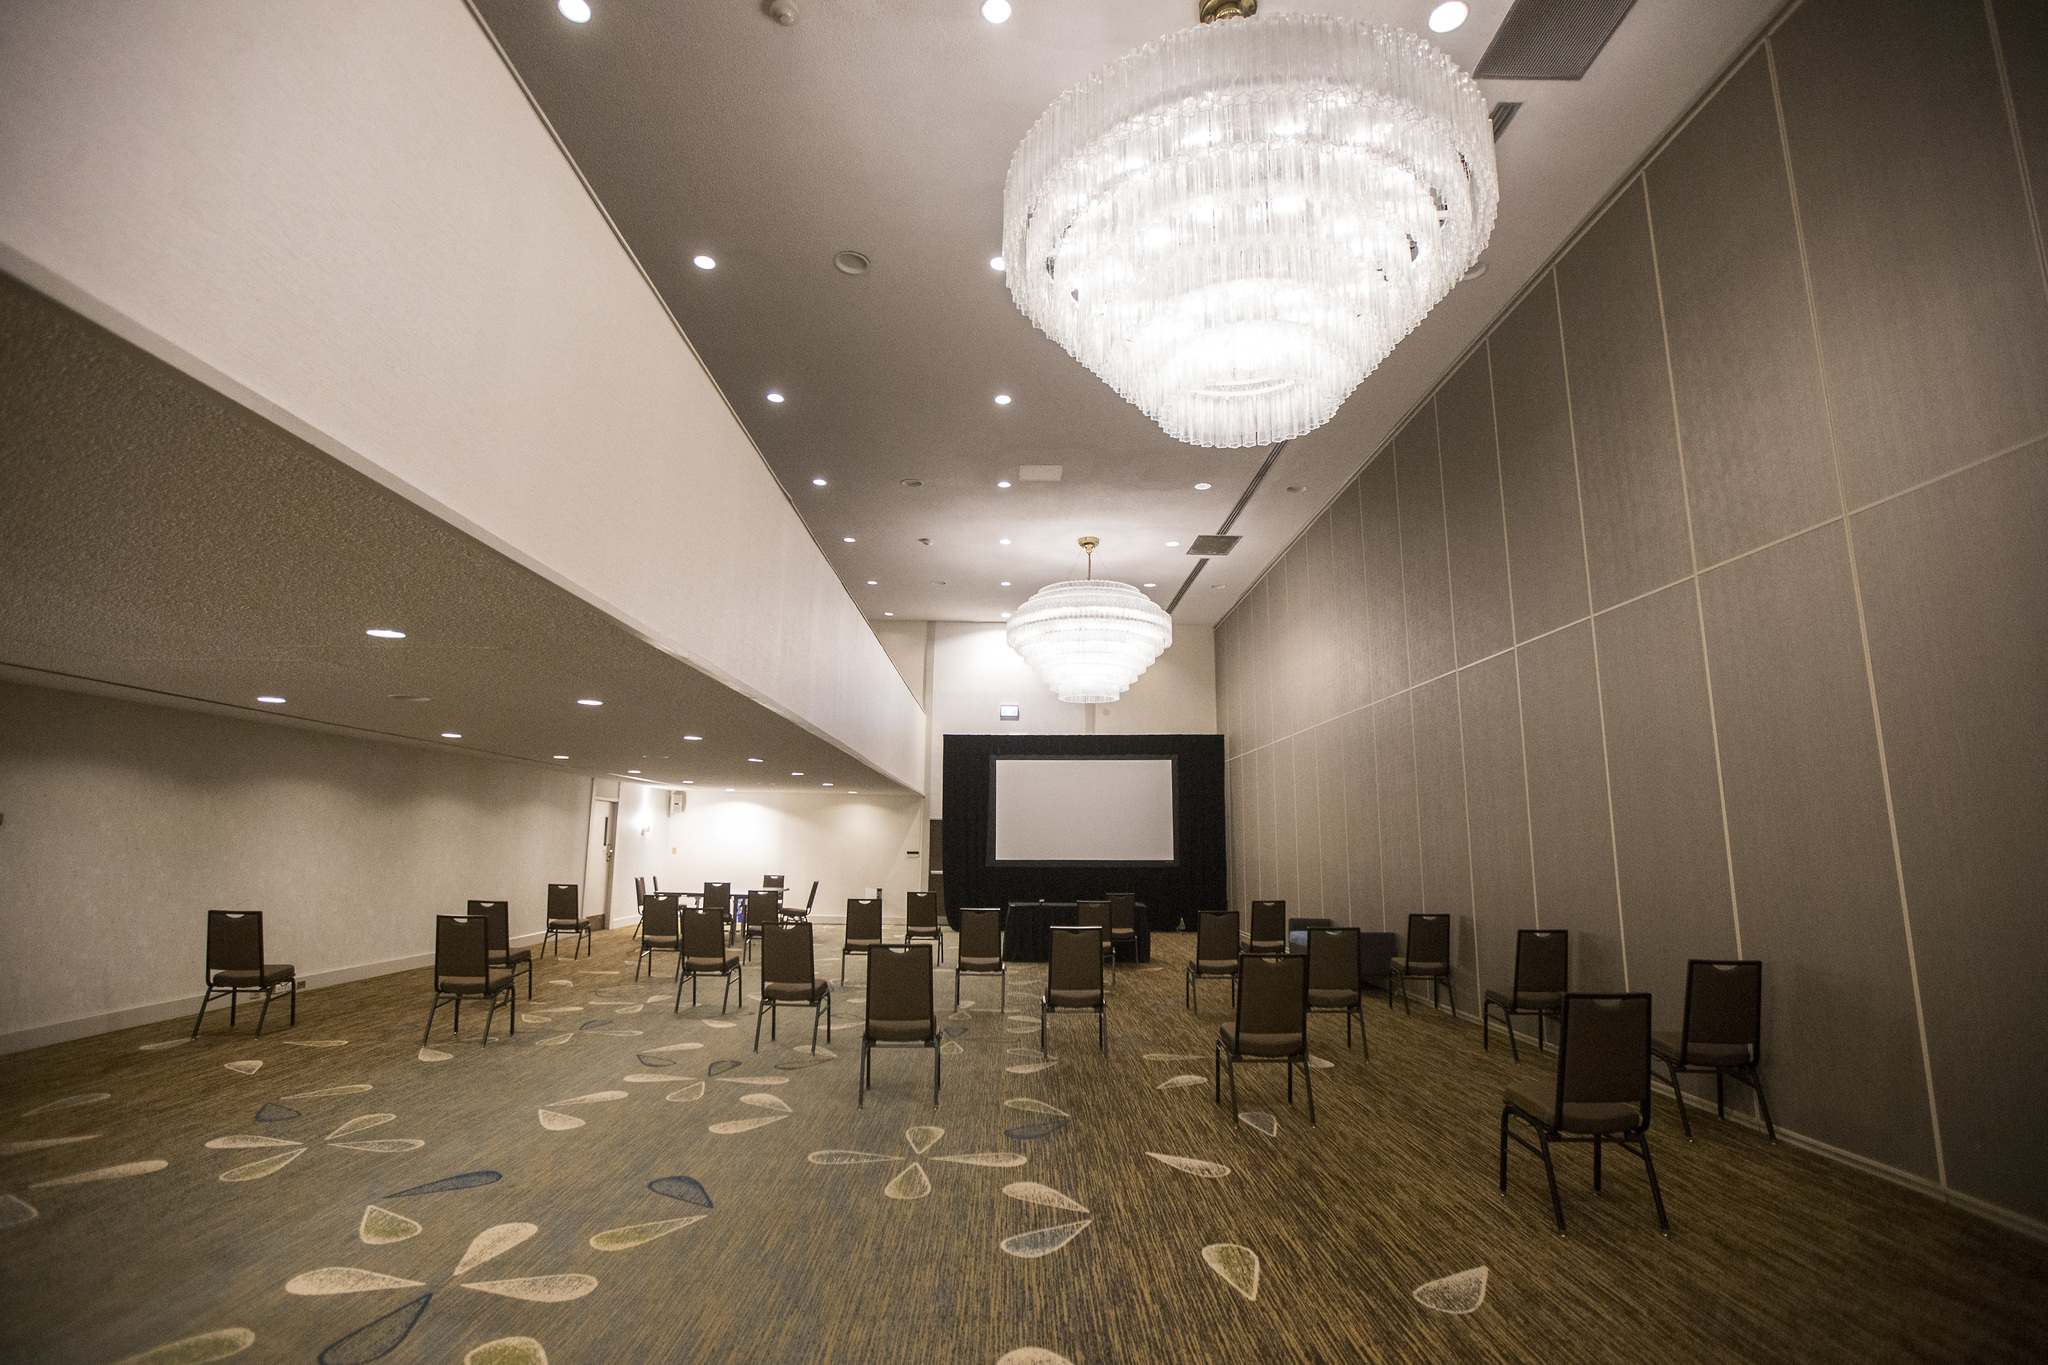 A conference room at the city's largest hotel sits unoccupied. (Mikaela MacKenzie / Winnipeg Free Press)